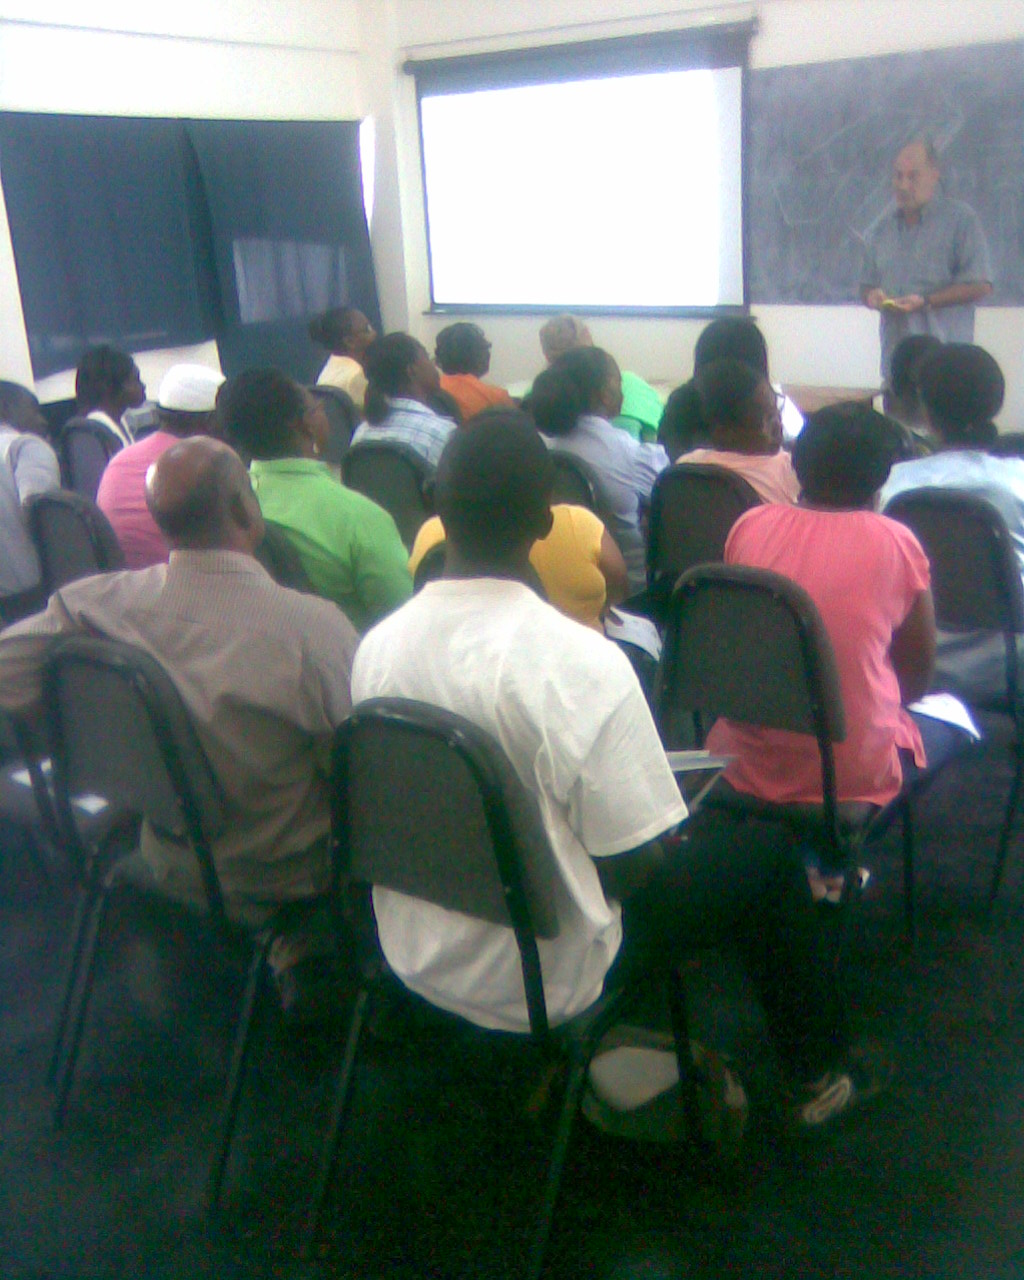 Solar Technology Project - Dr. Burkhardt in Theoretical Session on Building a Solar Drier